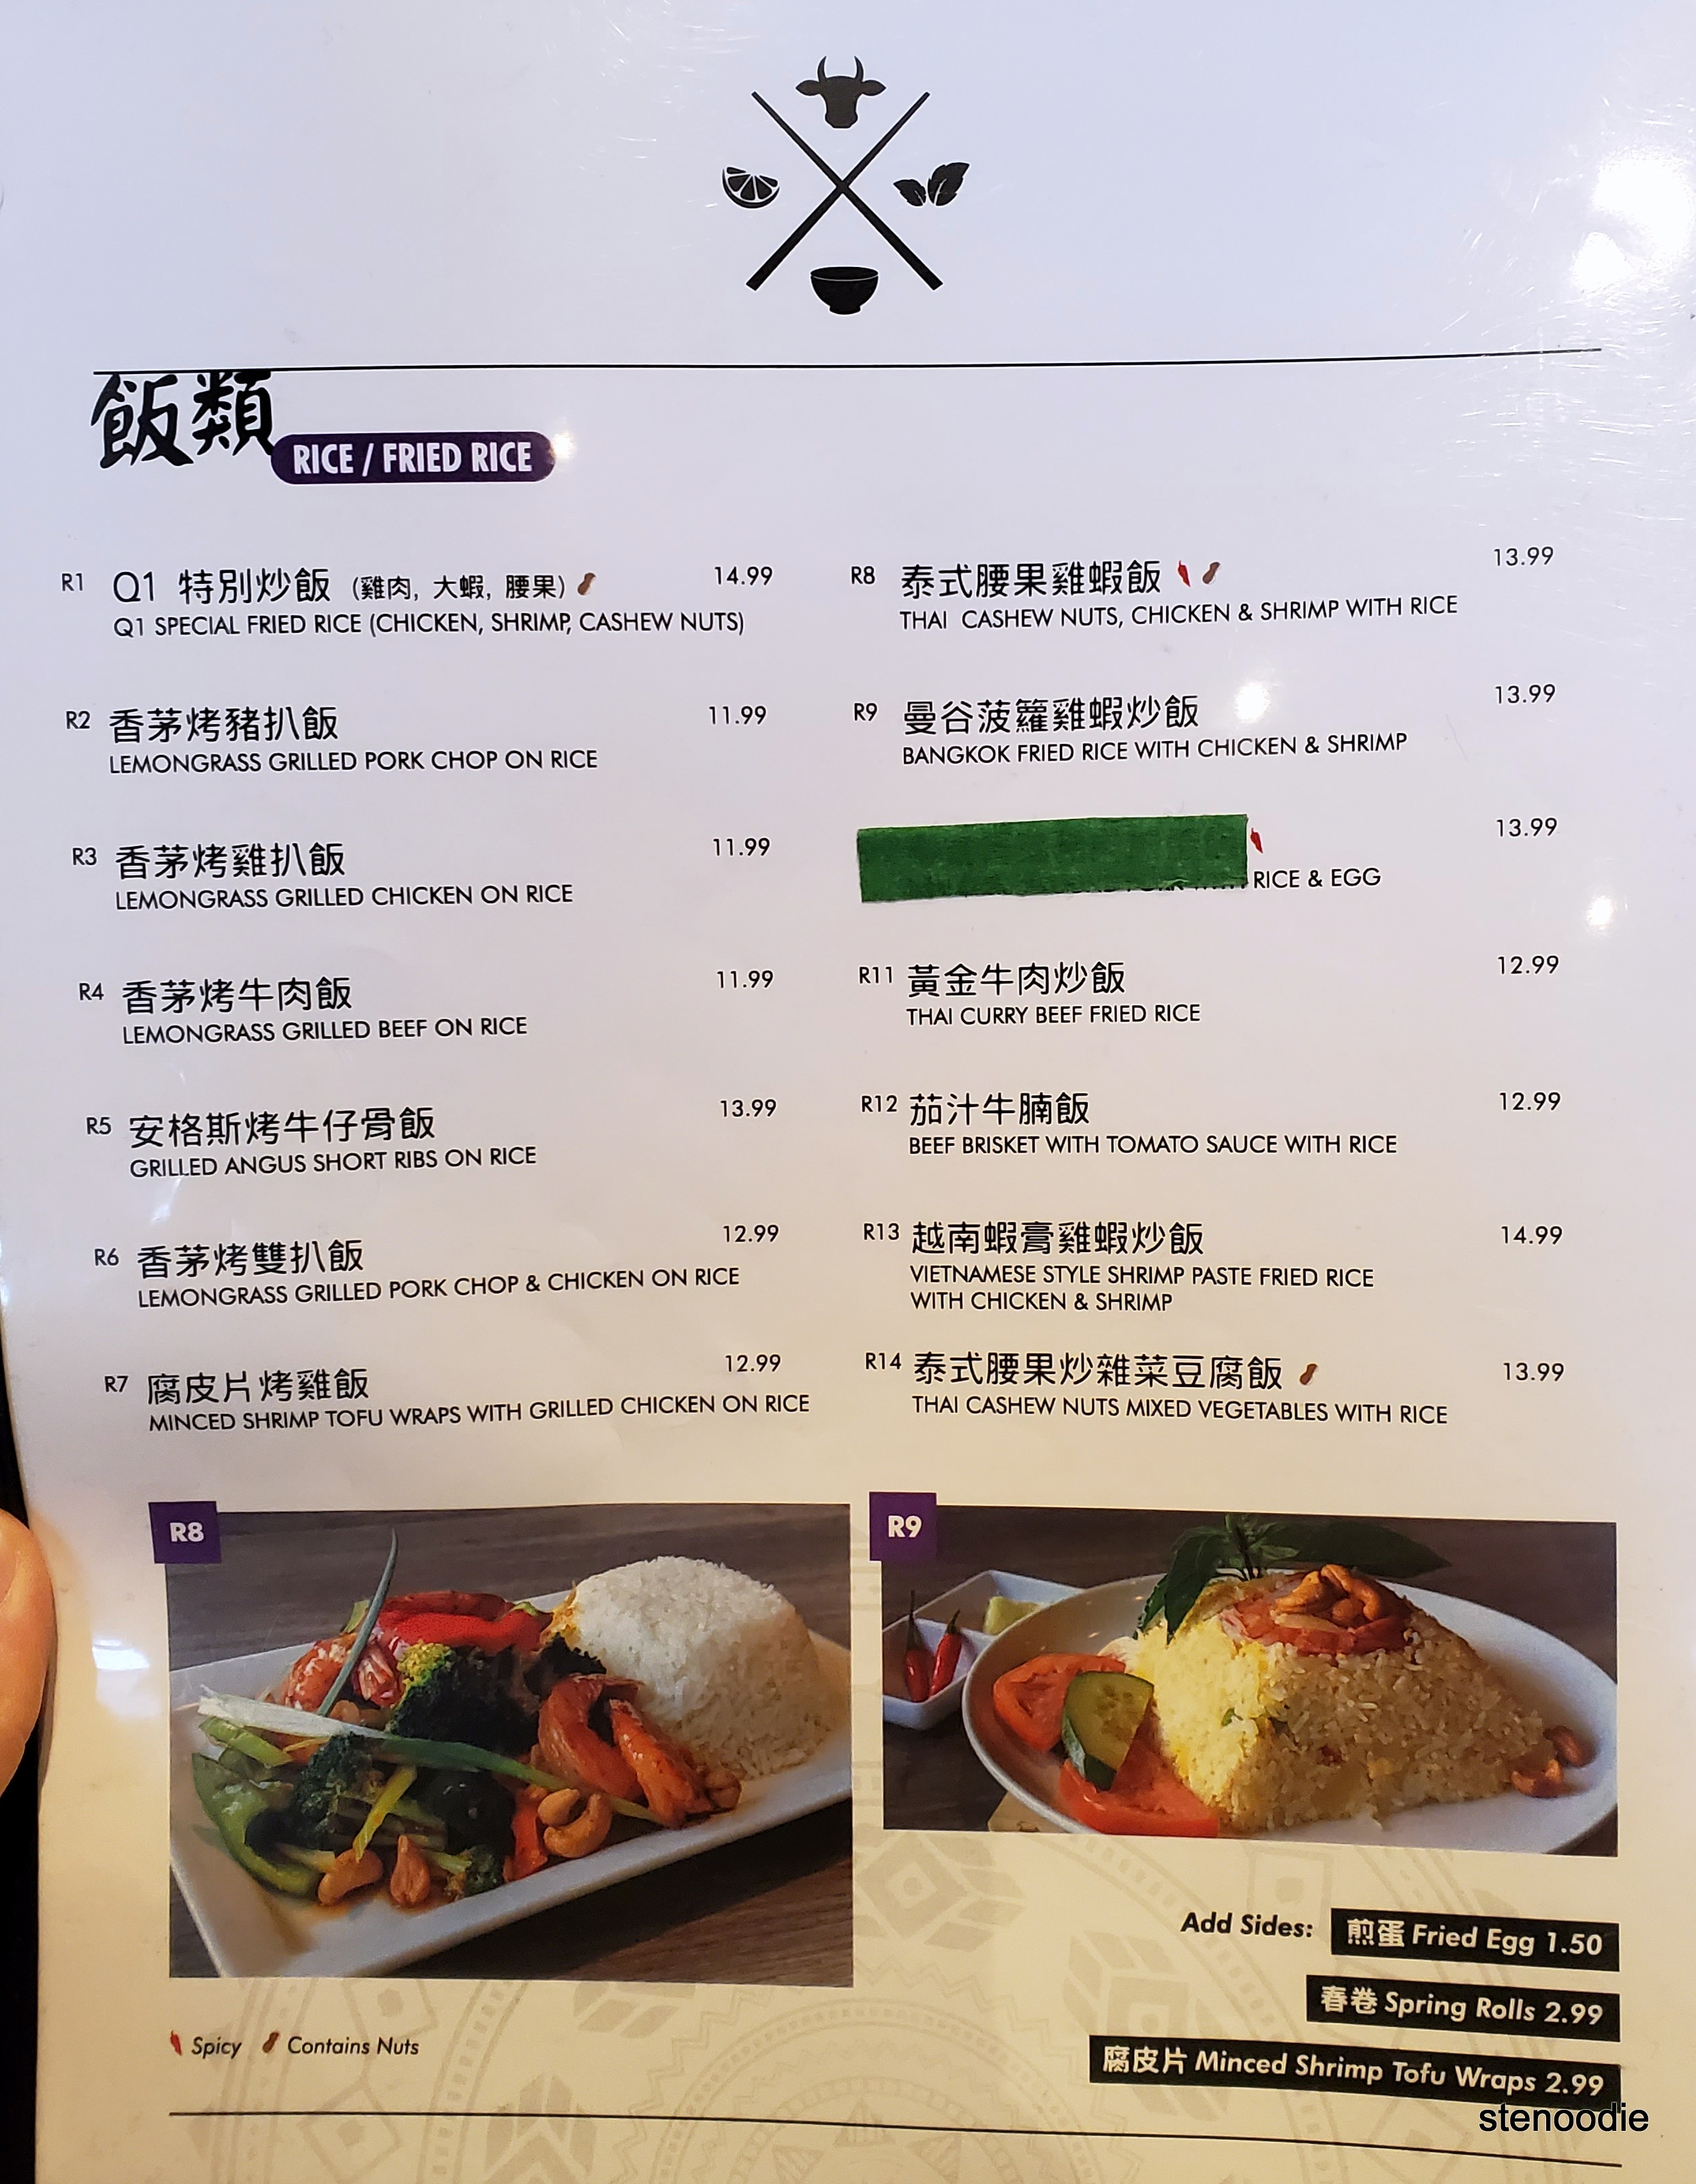 Q1 Le Pho menu and prices